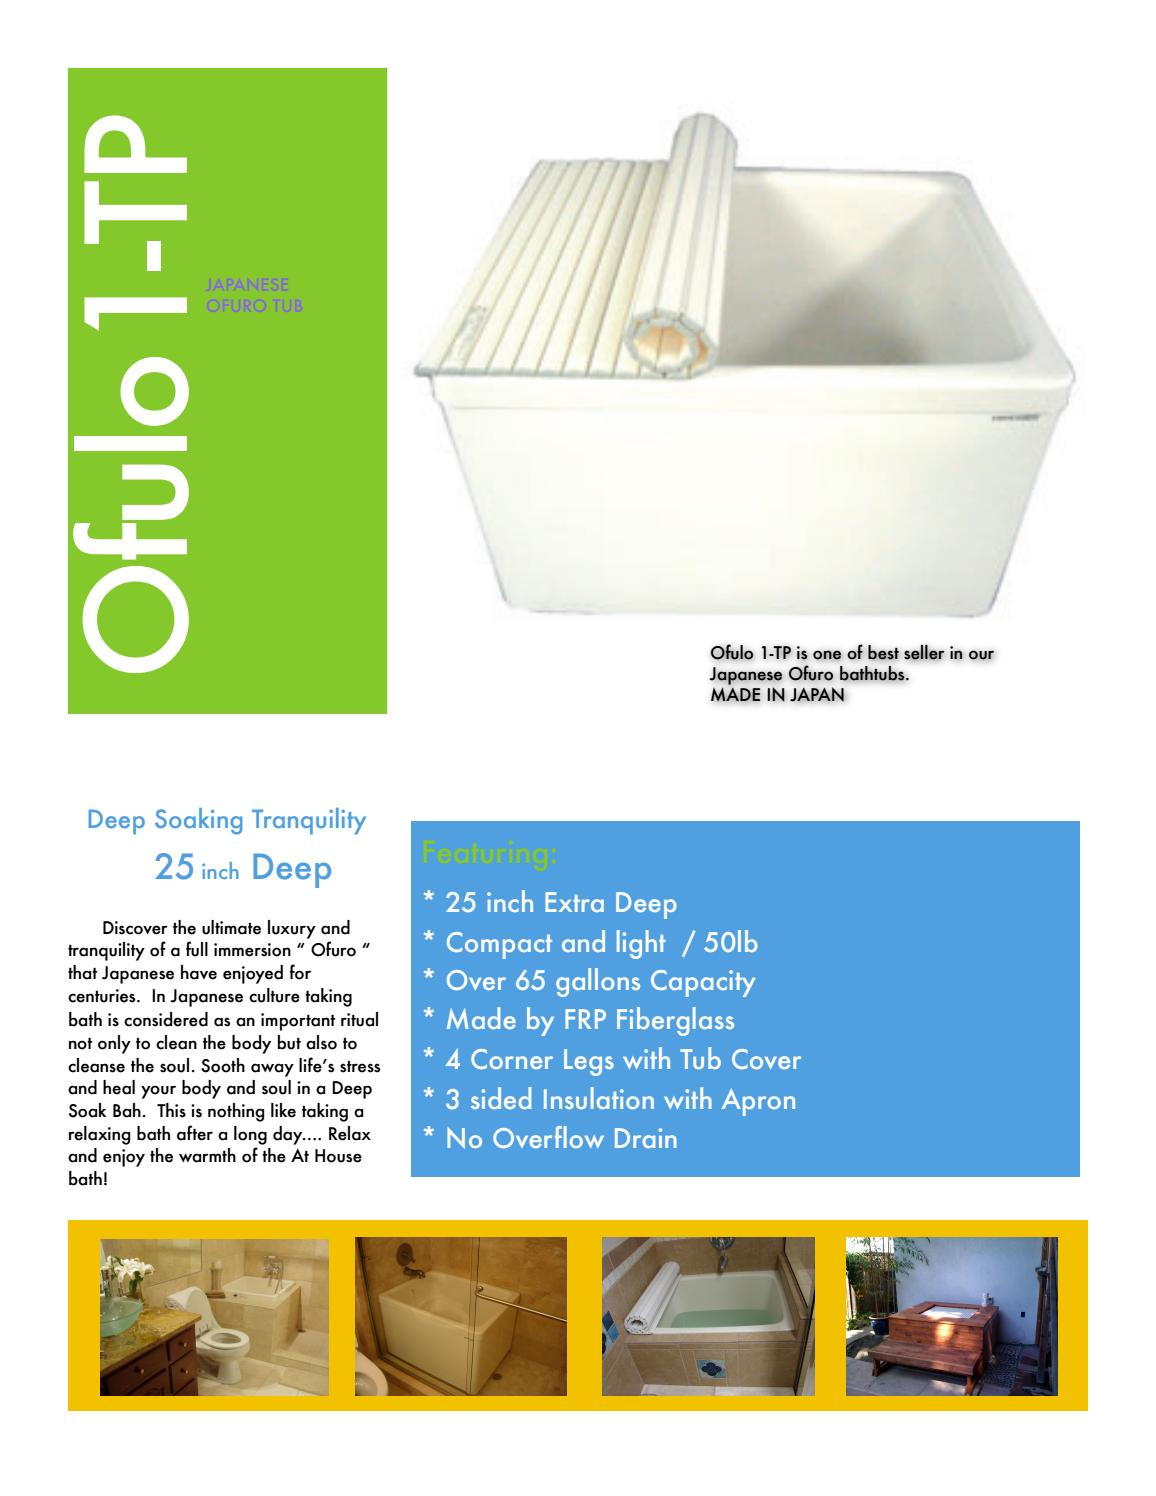 Ofulo 1 tp by The BATHROOM STORE - issuu